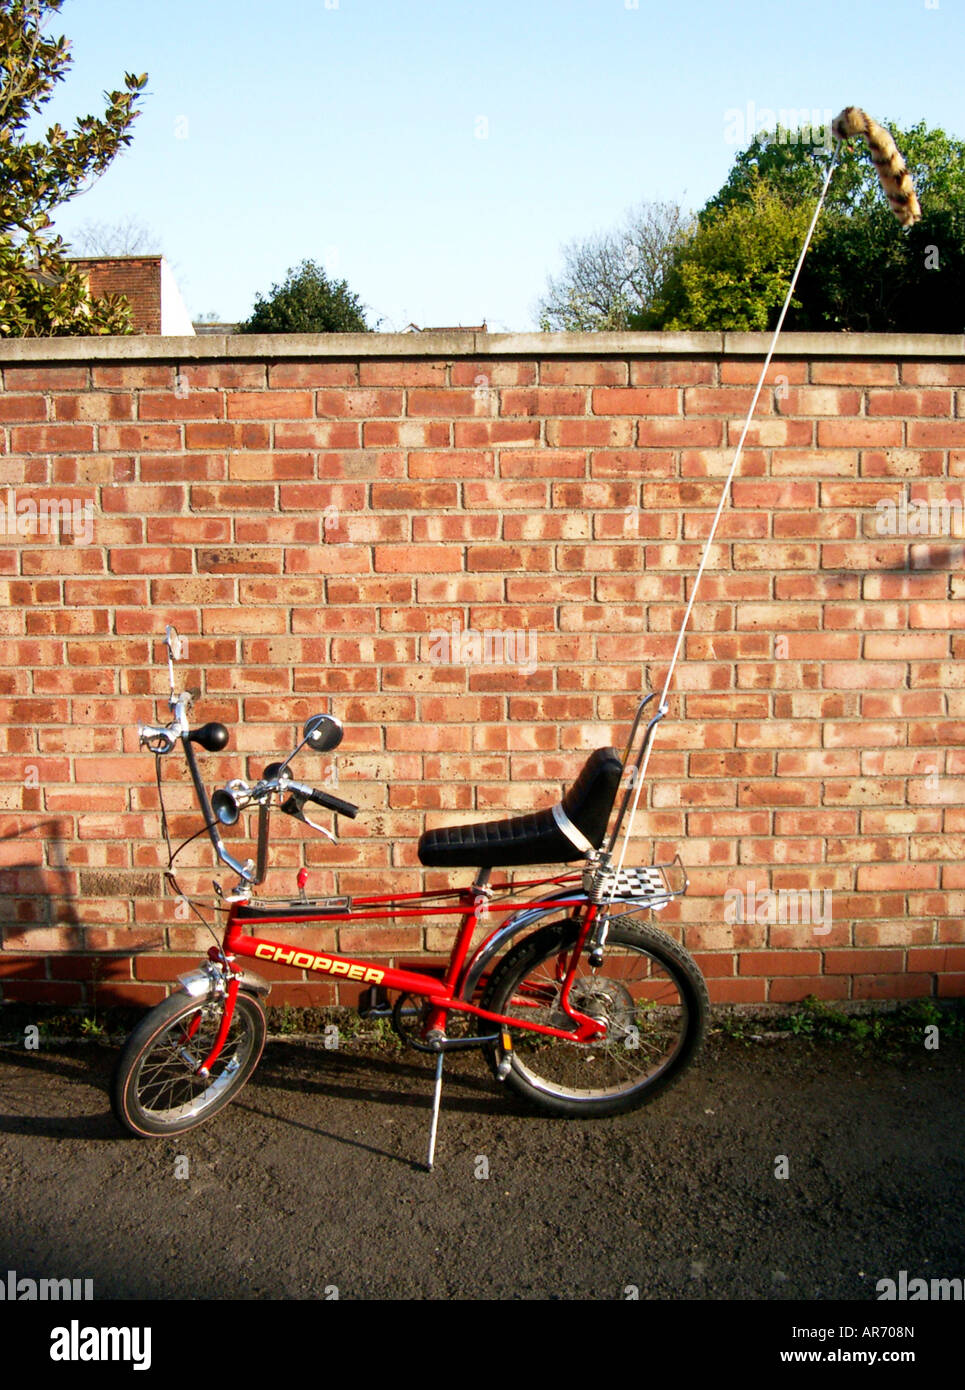 The iconic 1970s bicycle, the Raleigh Chopper Mark II - Stock Image